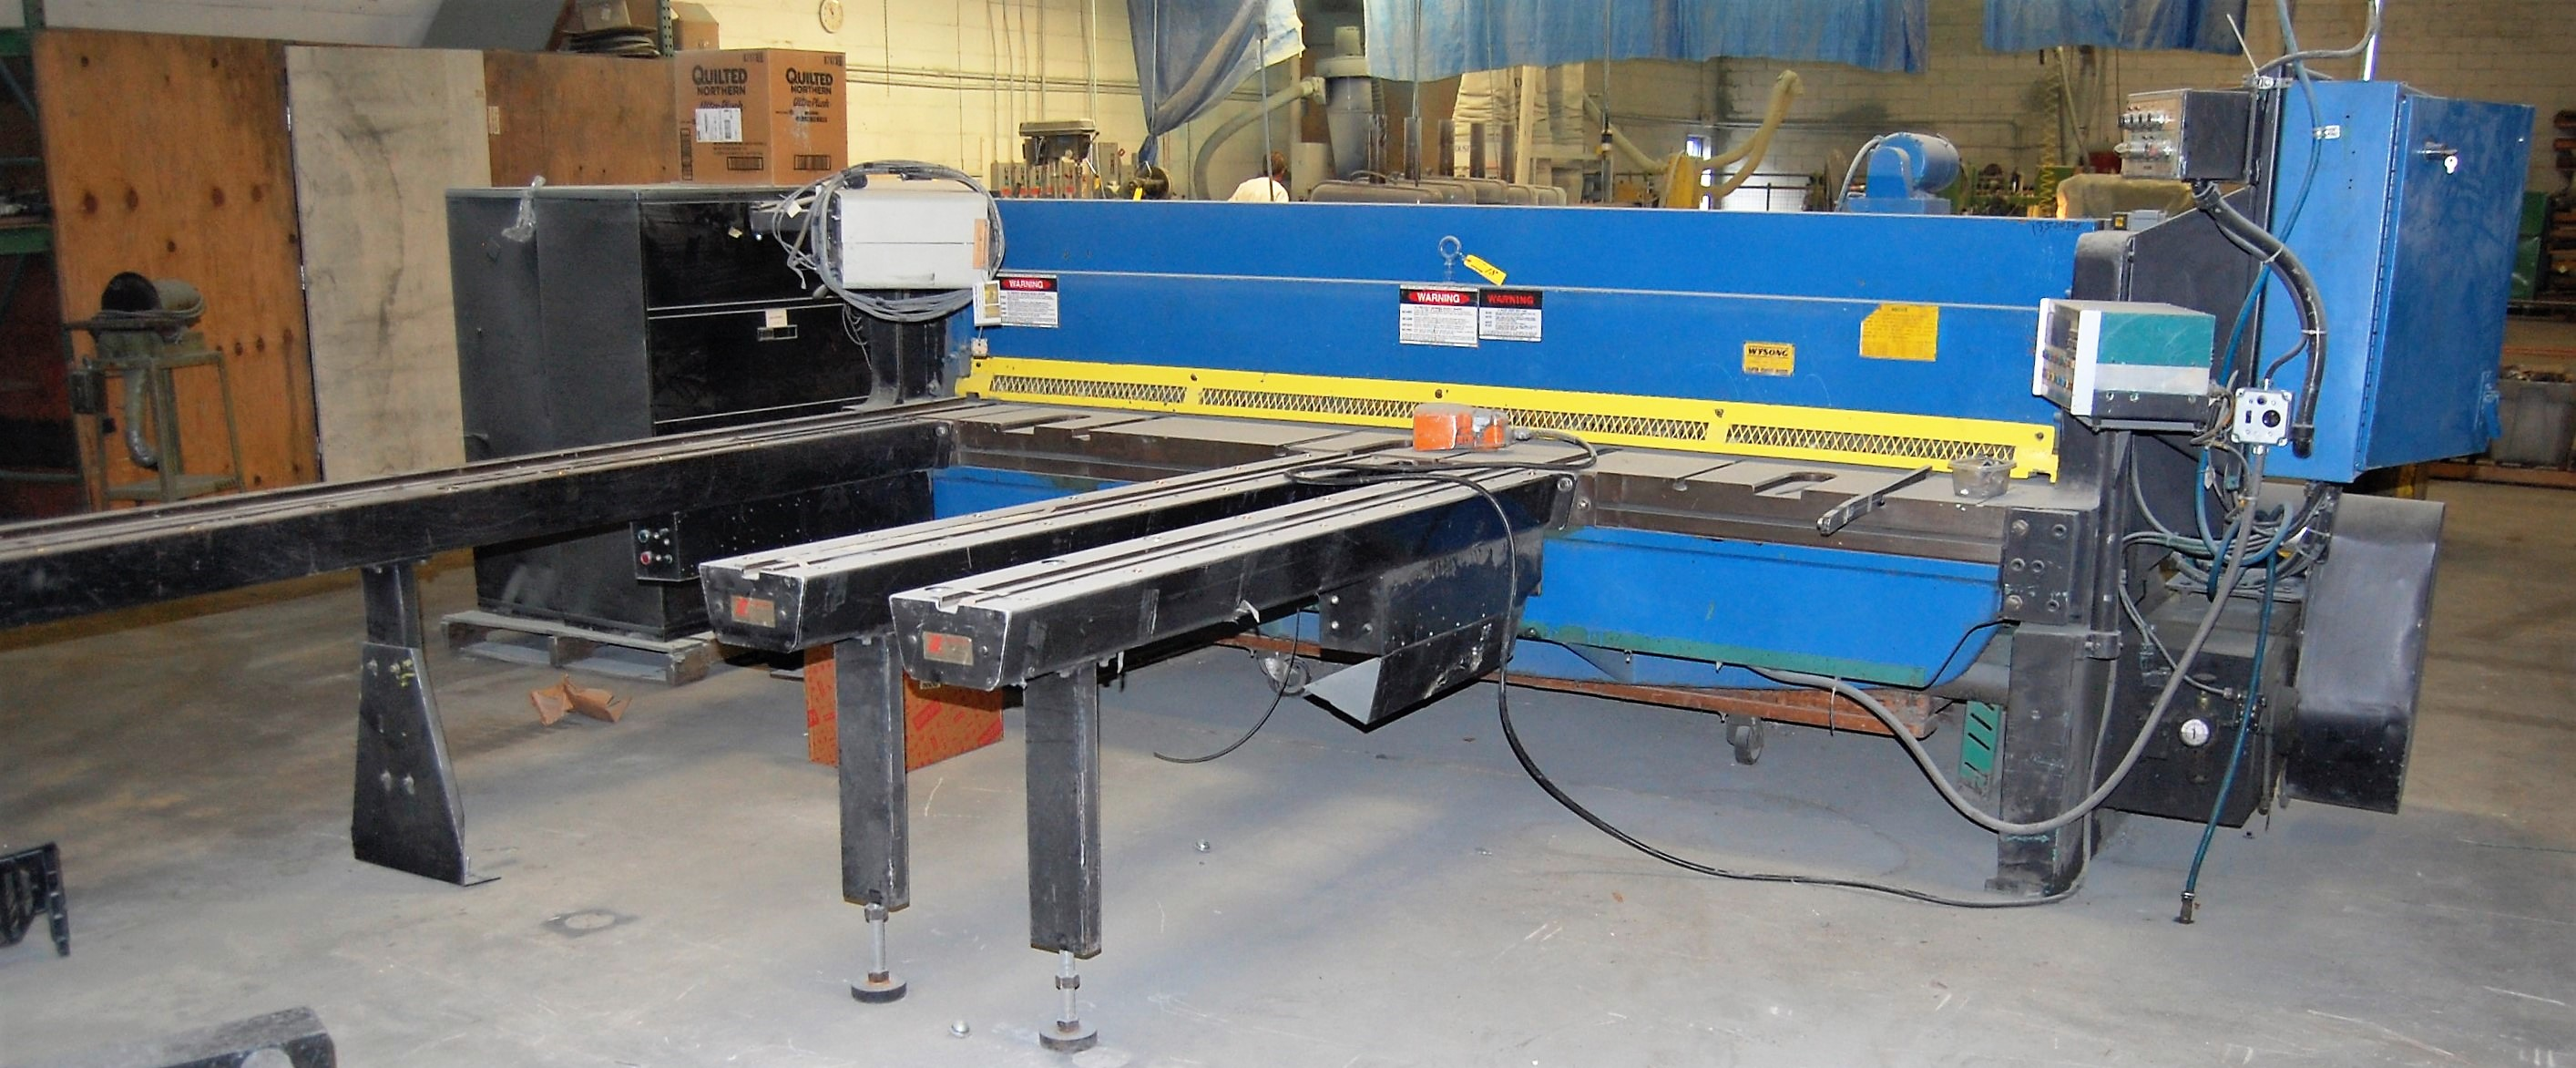 METAL FABRICATION AND WOOD/PLASTIC MACHINERY OF A SIGN MANUFACTURER